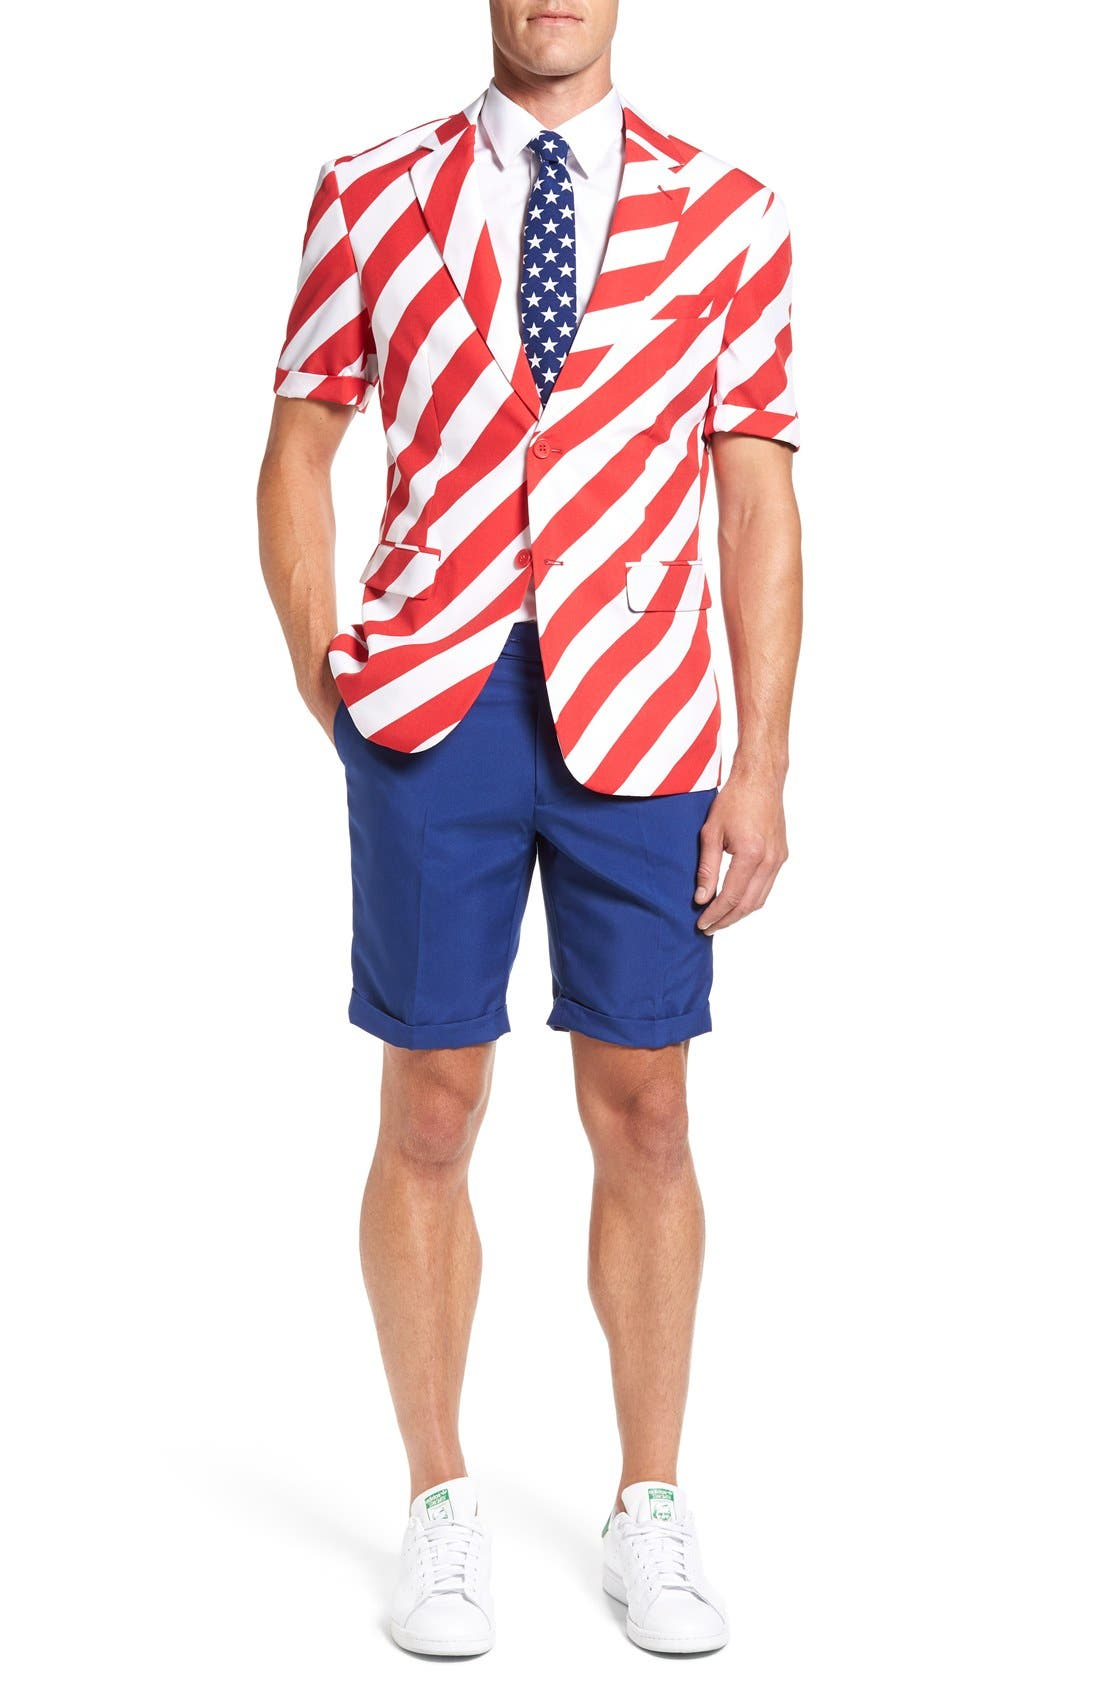 OppoSuits 'Summer United Stripes' Trim Fit Short Suit with Tie